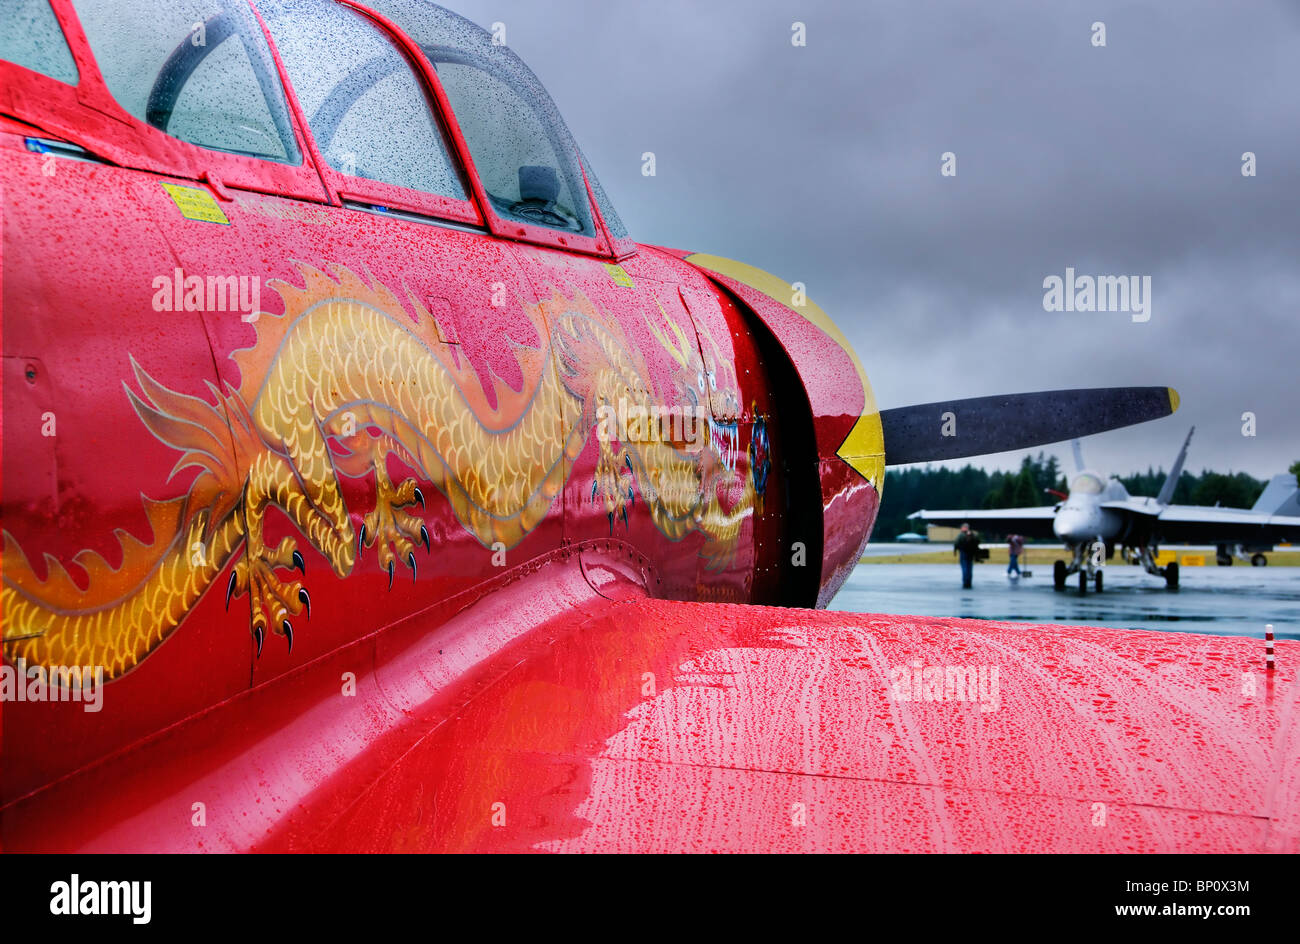 View looking along the side of a beautifully painted red Nanchang CJ-6A warbird at the Olympic Airshow in Tumwater, - Stock Image